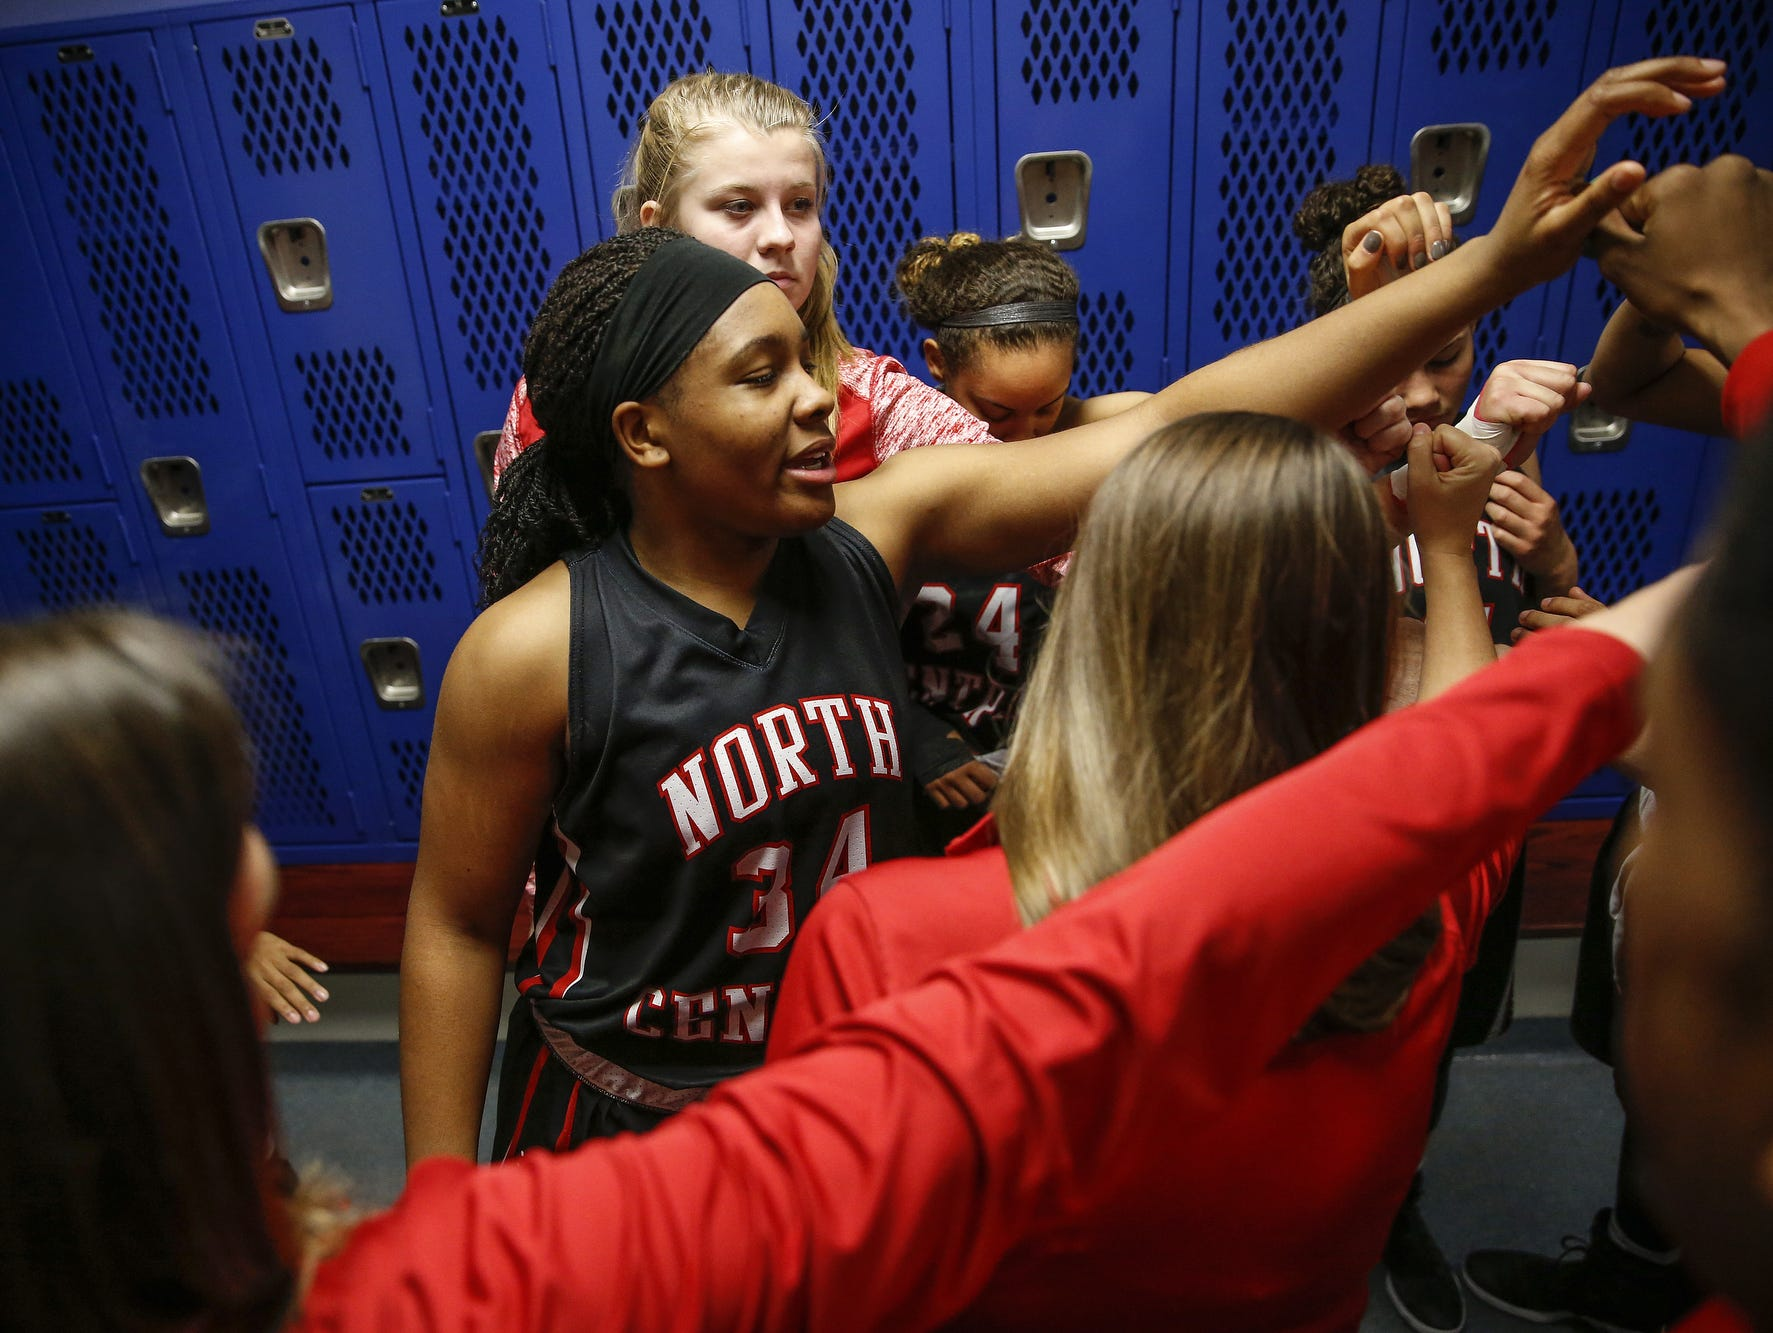 North Central Panthers' Ajanae« Thomas (34) breaks a huddle with her team after the Panthers' win against the Carmel Greyhounds at Carmel High School on Friday, Dec. 16, 2016.